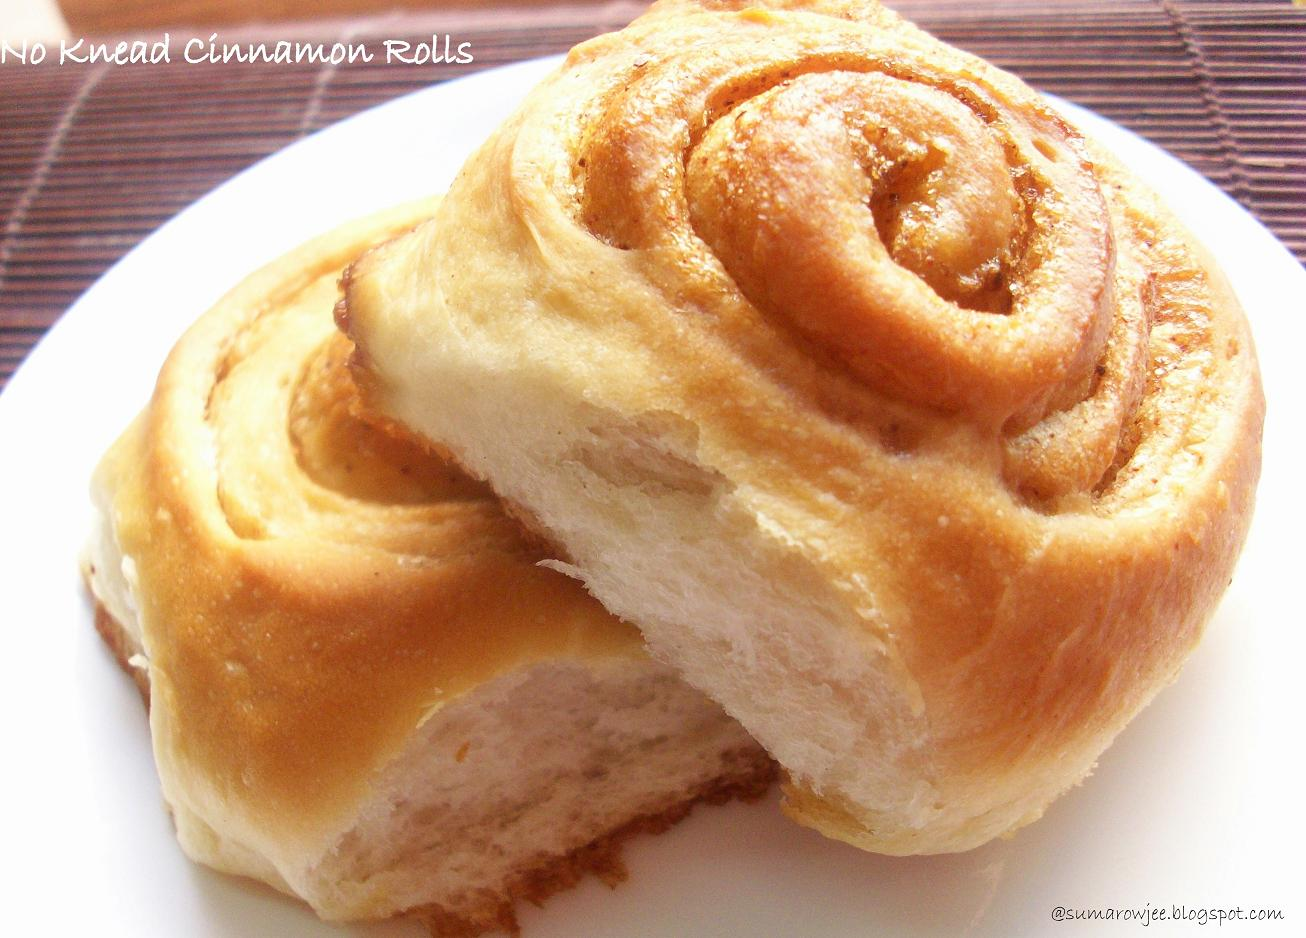 Cakes And More!: No Knead Soft Cinnamon Rolls (Eggless) - Pioneer ...